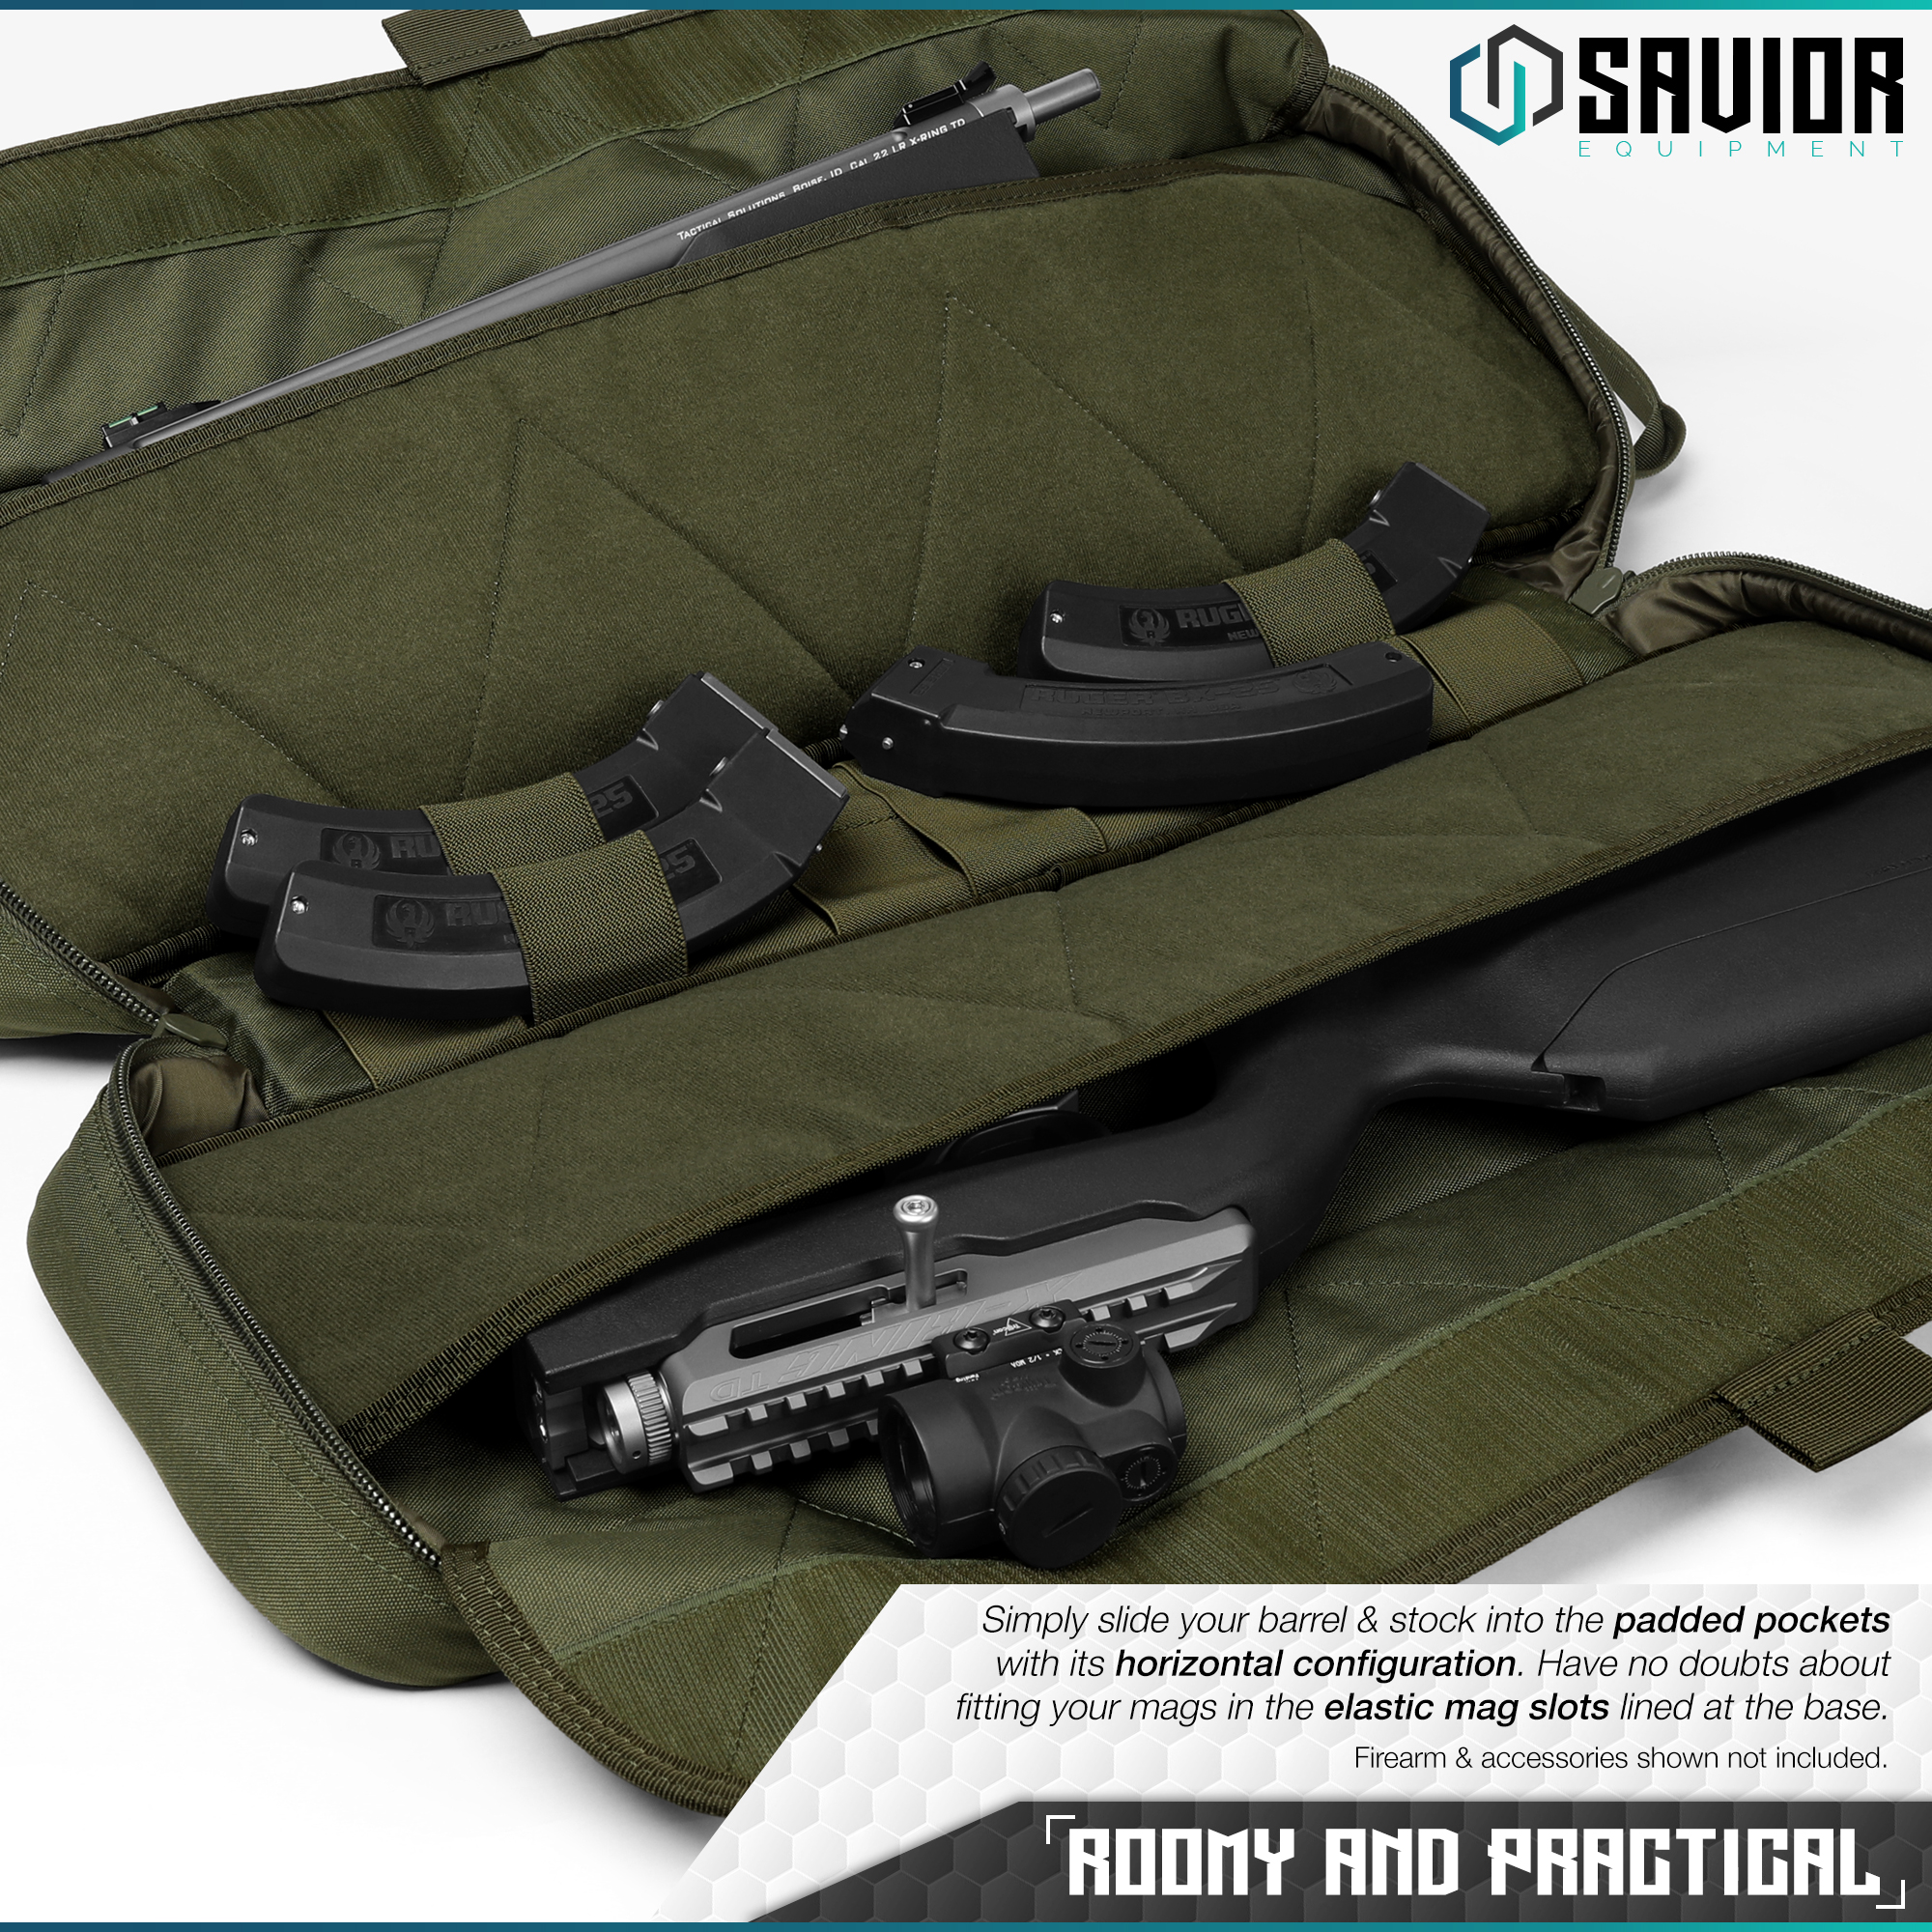 Savior-Tactical-Urban-Takedown-Bag-Carbine-Rifle-Padded-Shotgun-Firearm-Backpack thumbnail 16